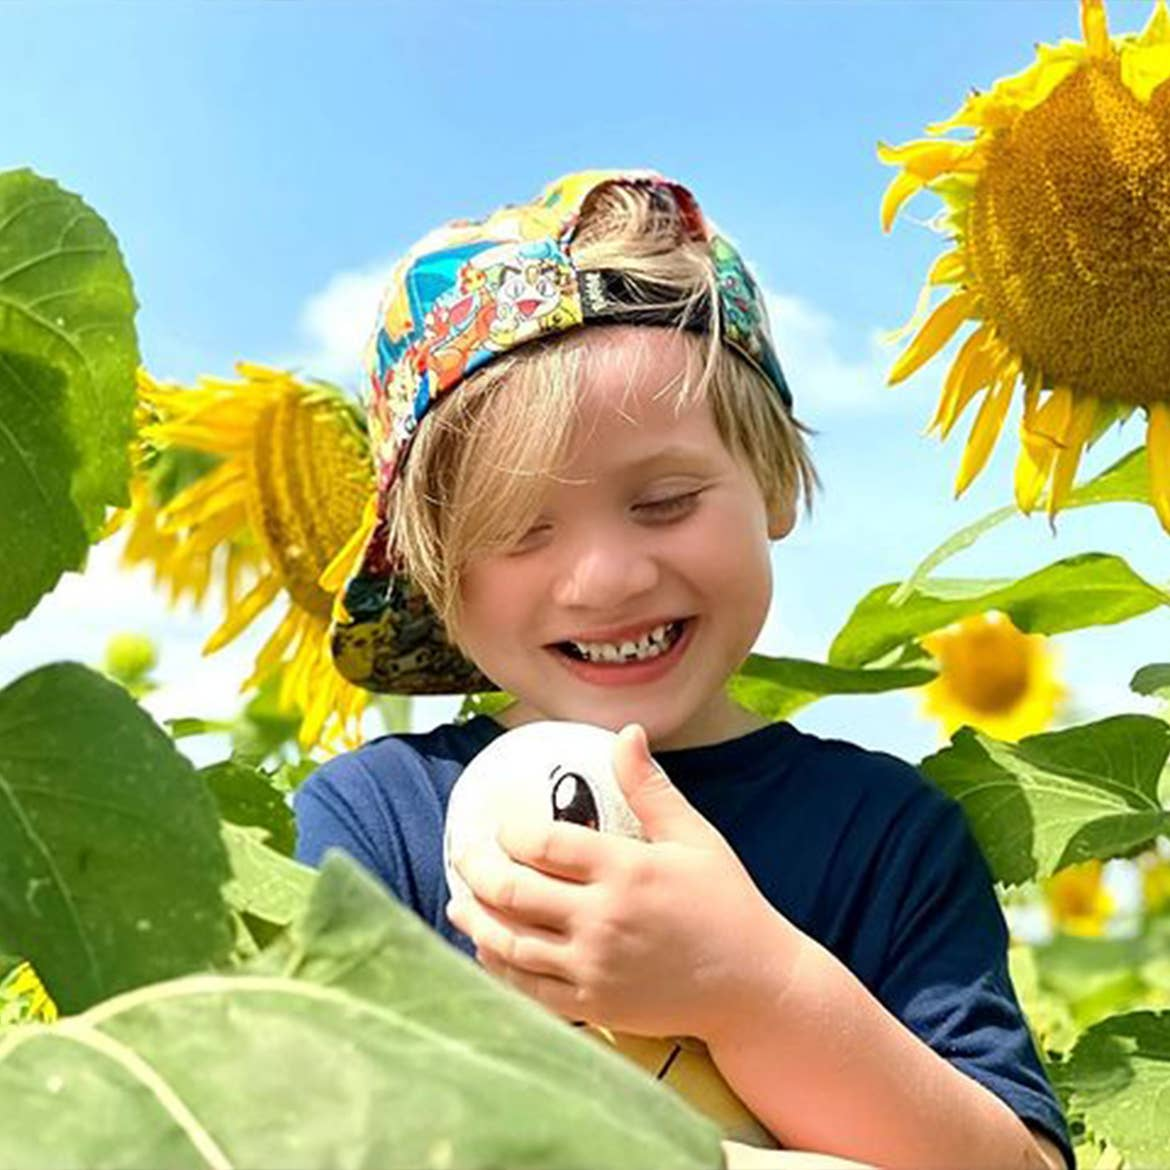 Featured Contributor, Alicia Trautwein's son stands in a sunflower field wearing a hat and holding a plush Squirtle.